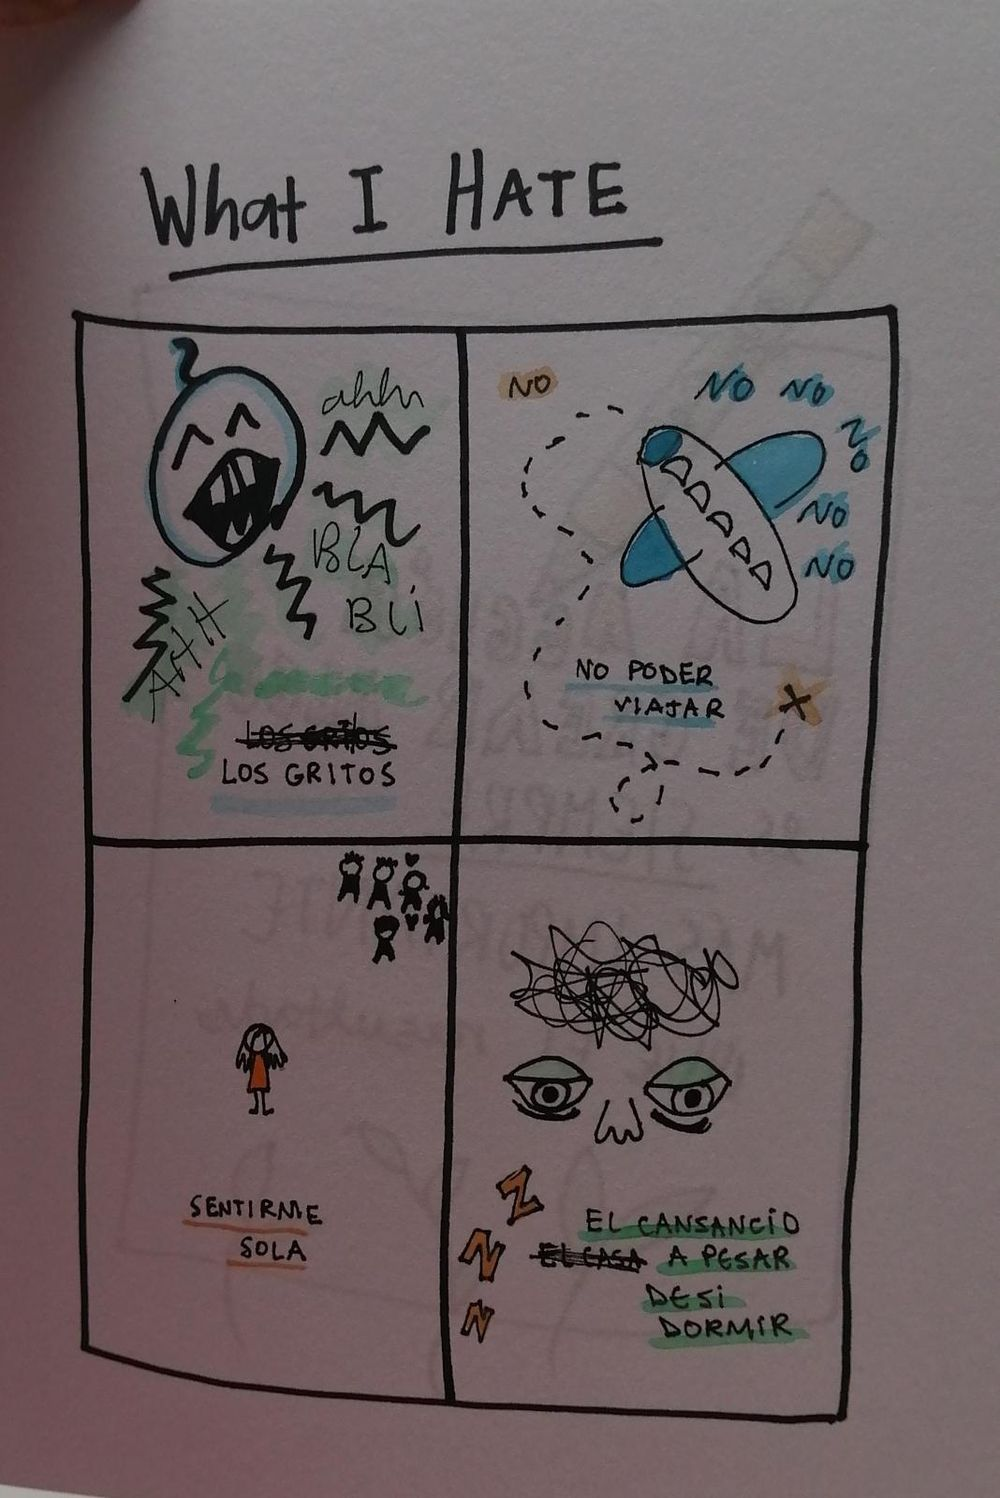 Drawing my feelings in spanish - image 2 - student project